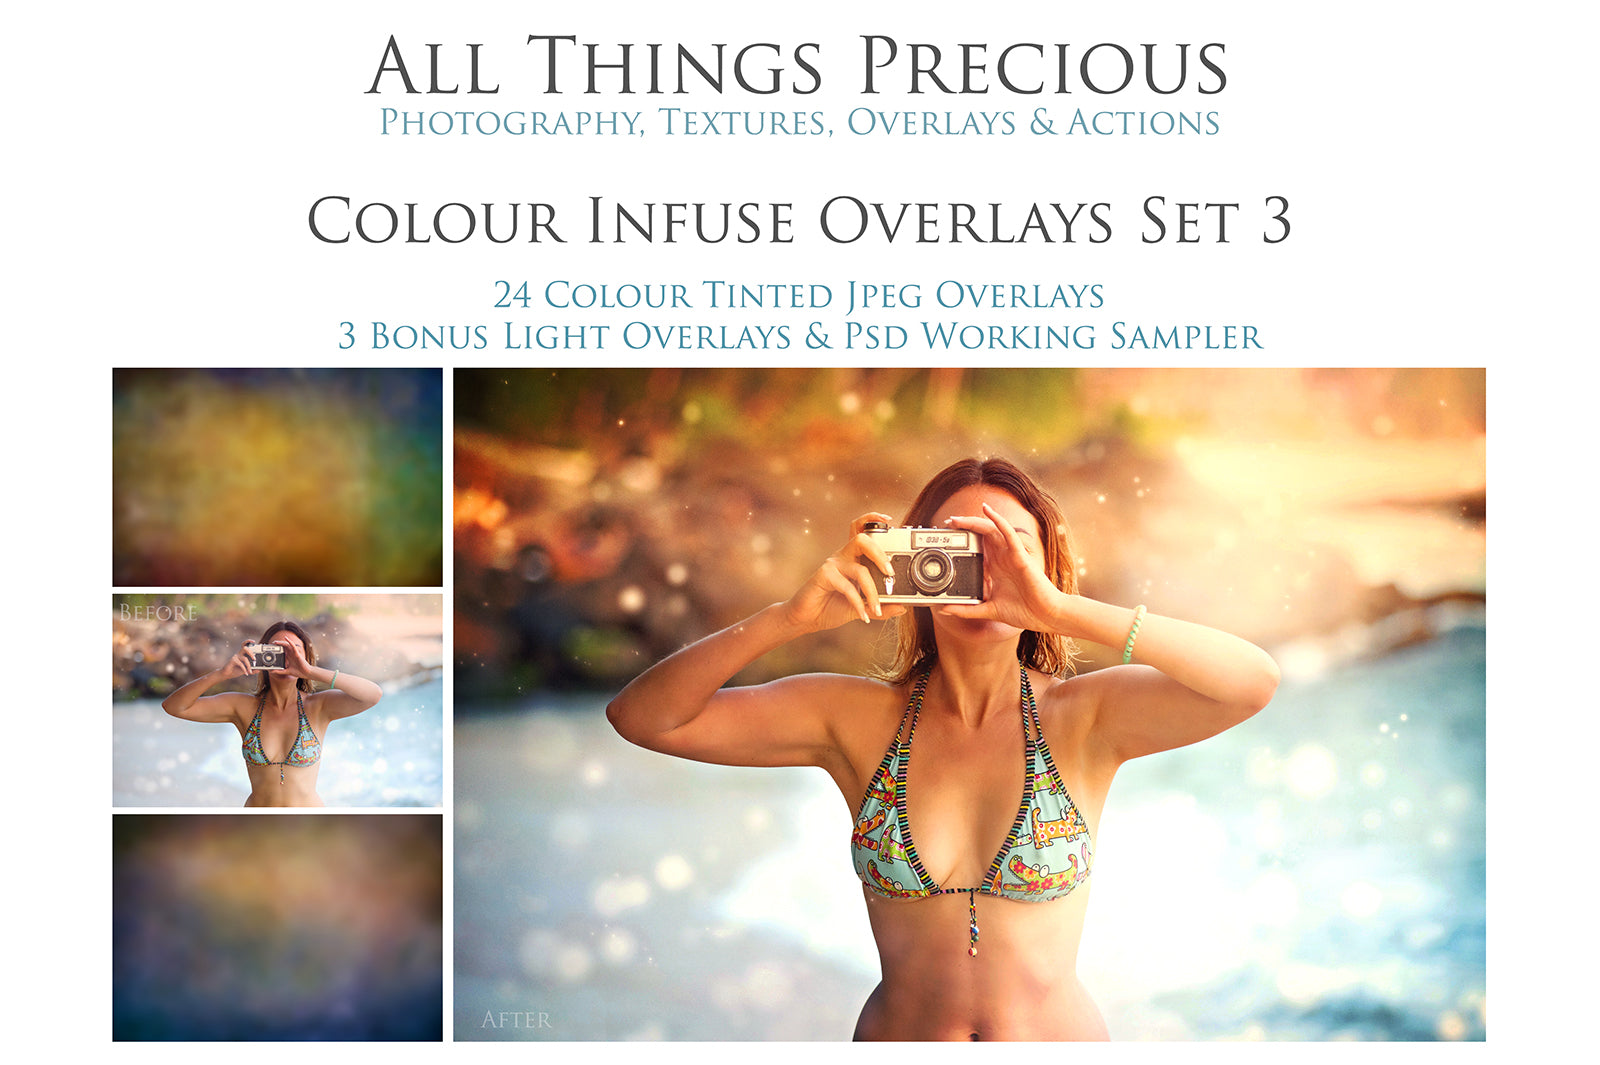 24 COLOUR INFUSE Digital Overlays Set 3